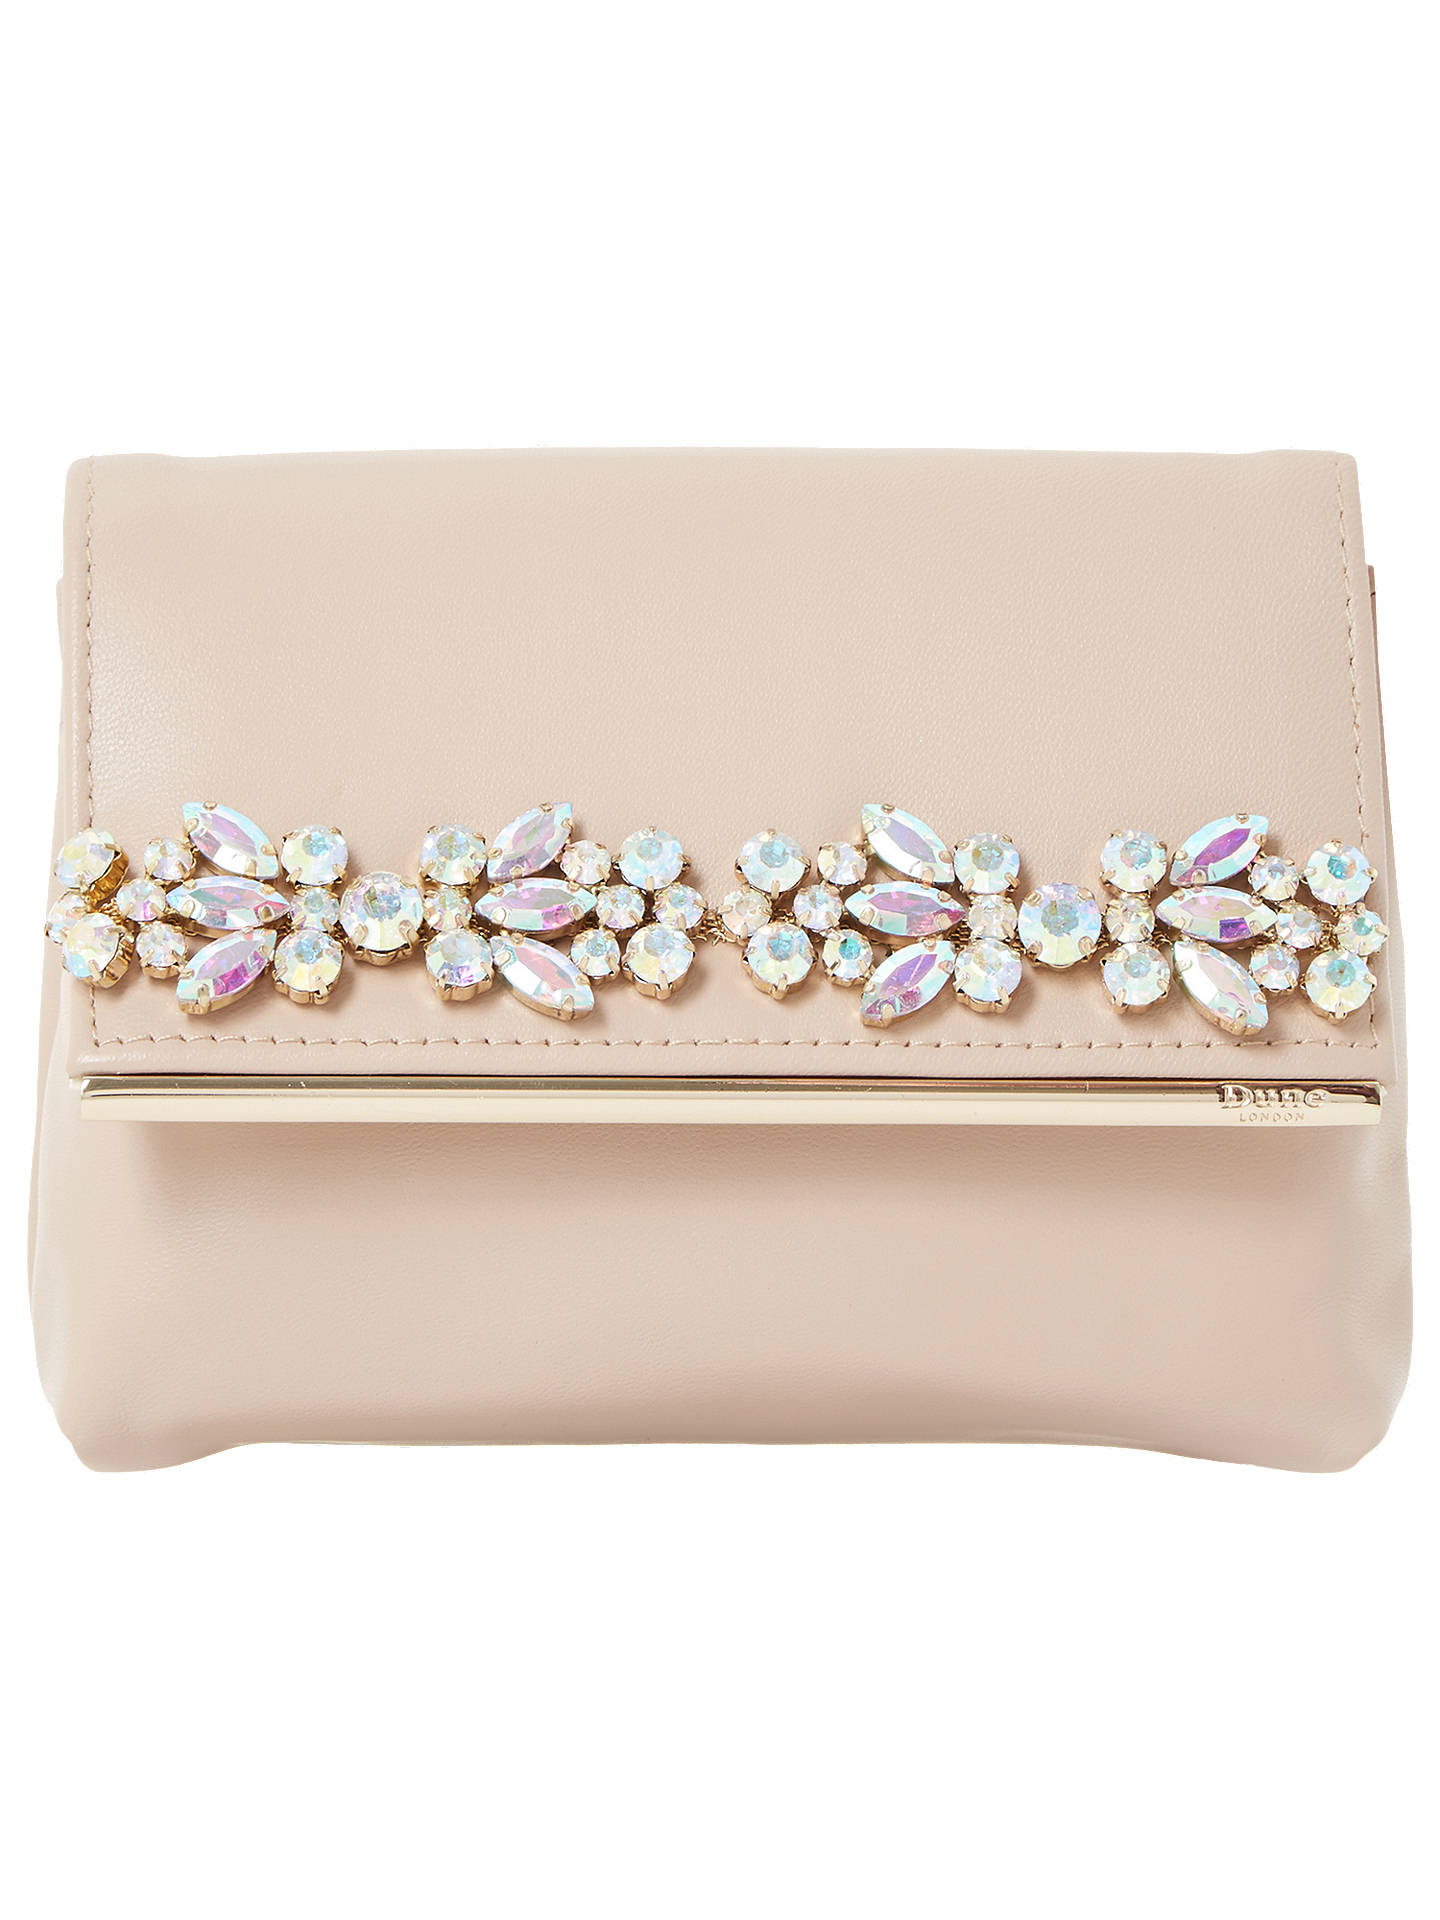 1430dff7bfc Buy Dune Beyond Clutch Bag, Pink Online at johnlewis.com ...